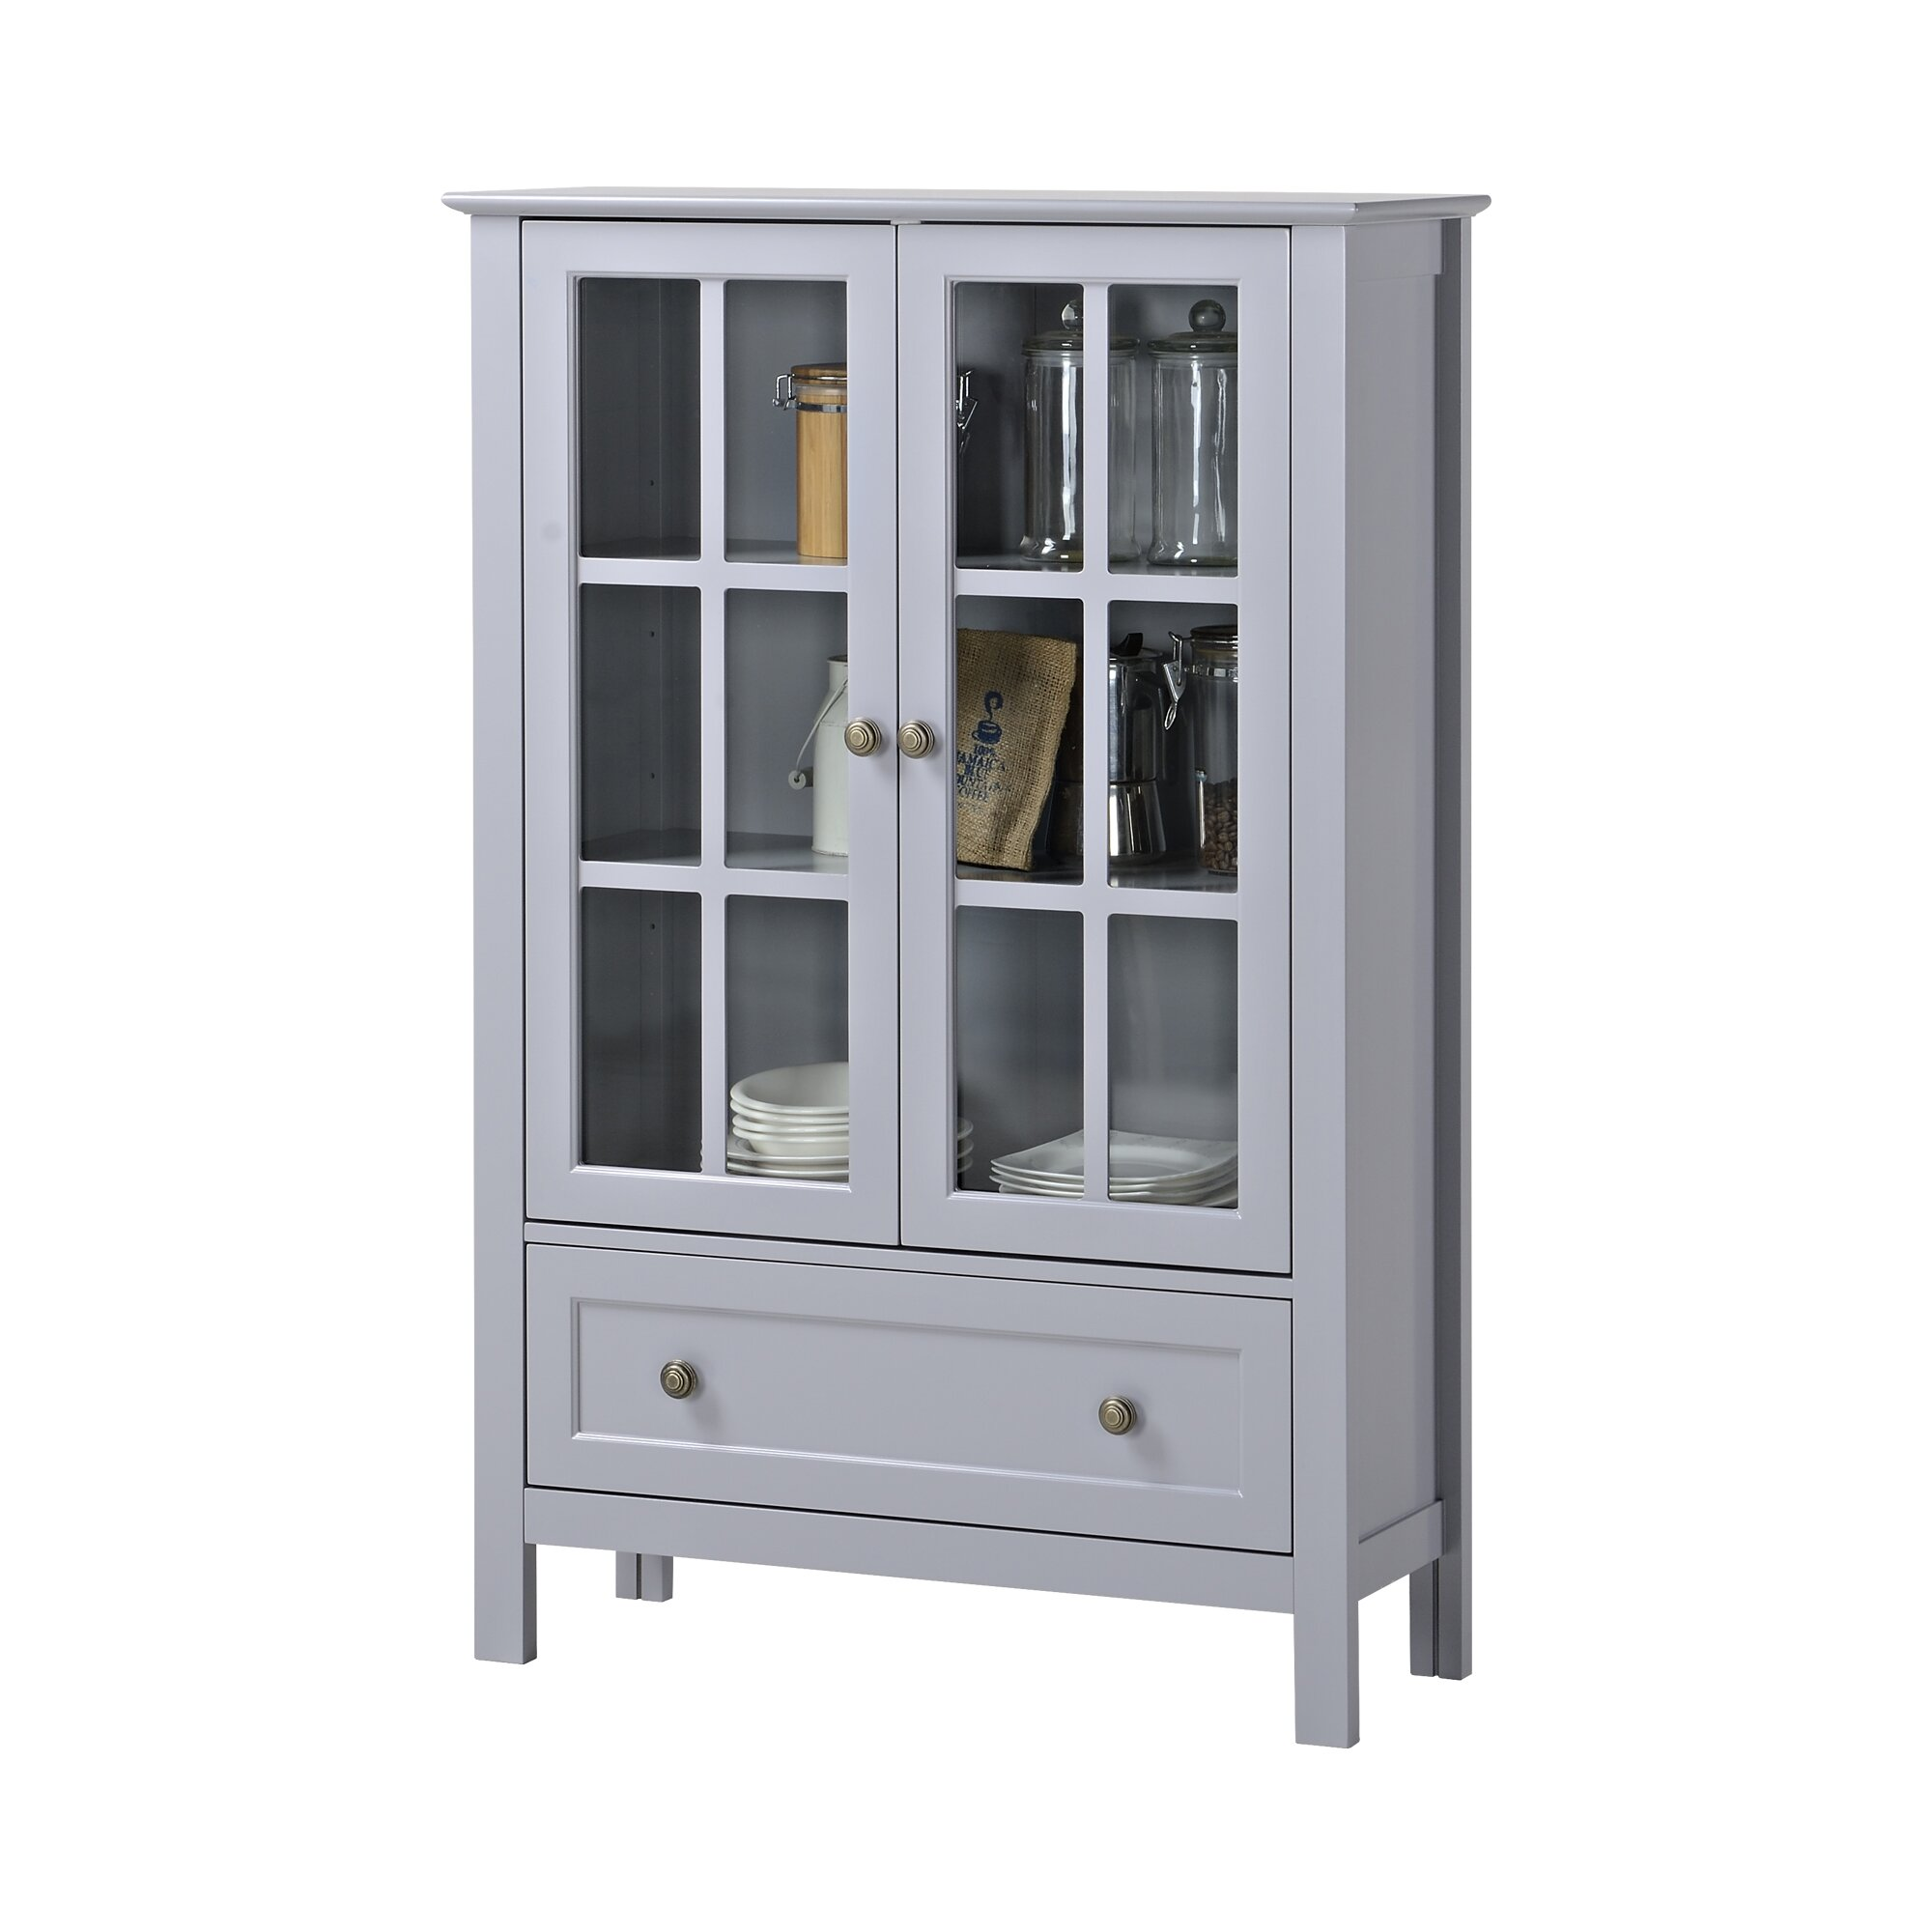 Homestar tall cabinet reviews wayfair for 1 door cabinet